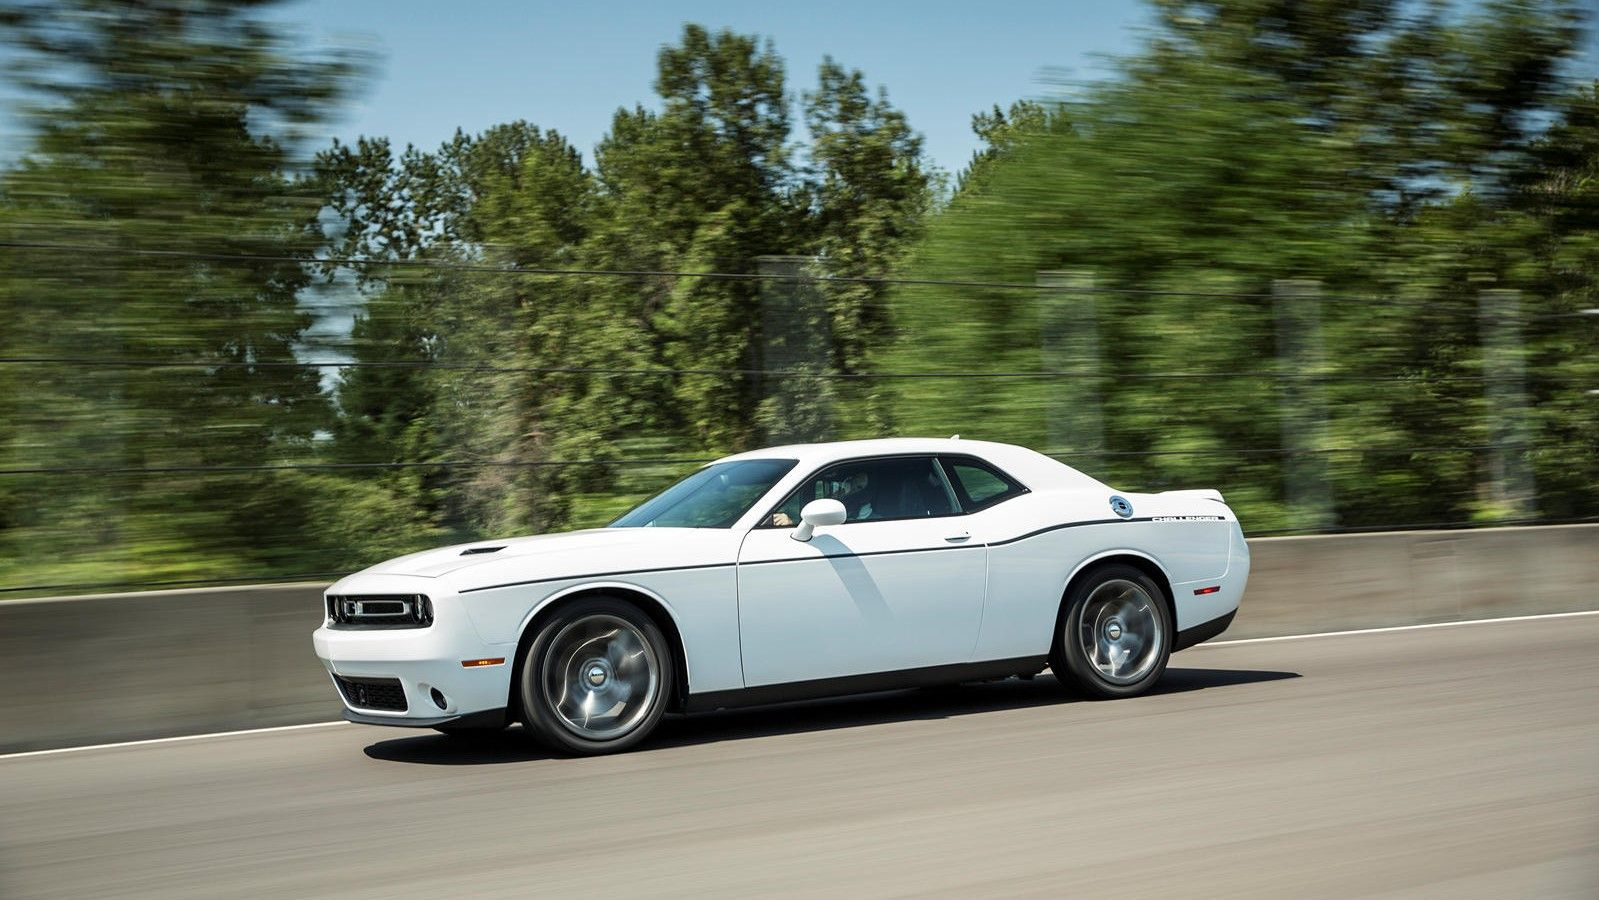 2021 Dodge Challenger Side View